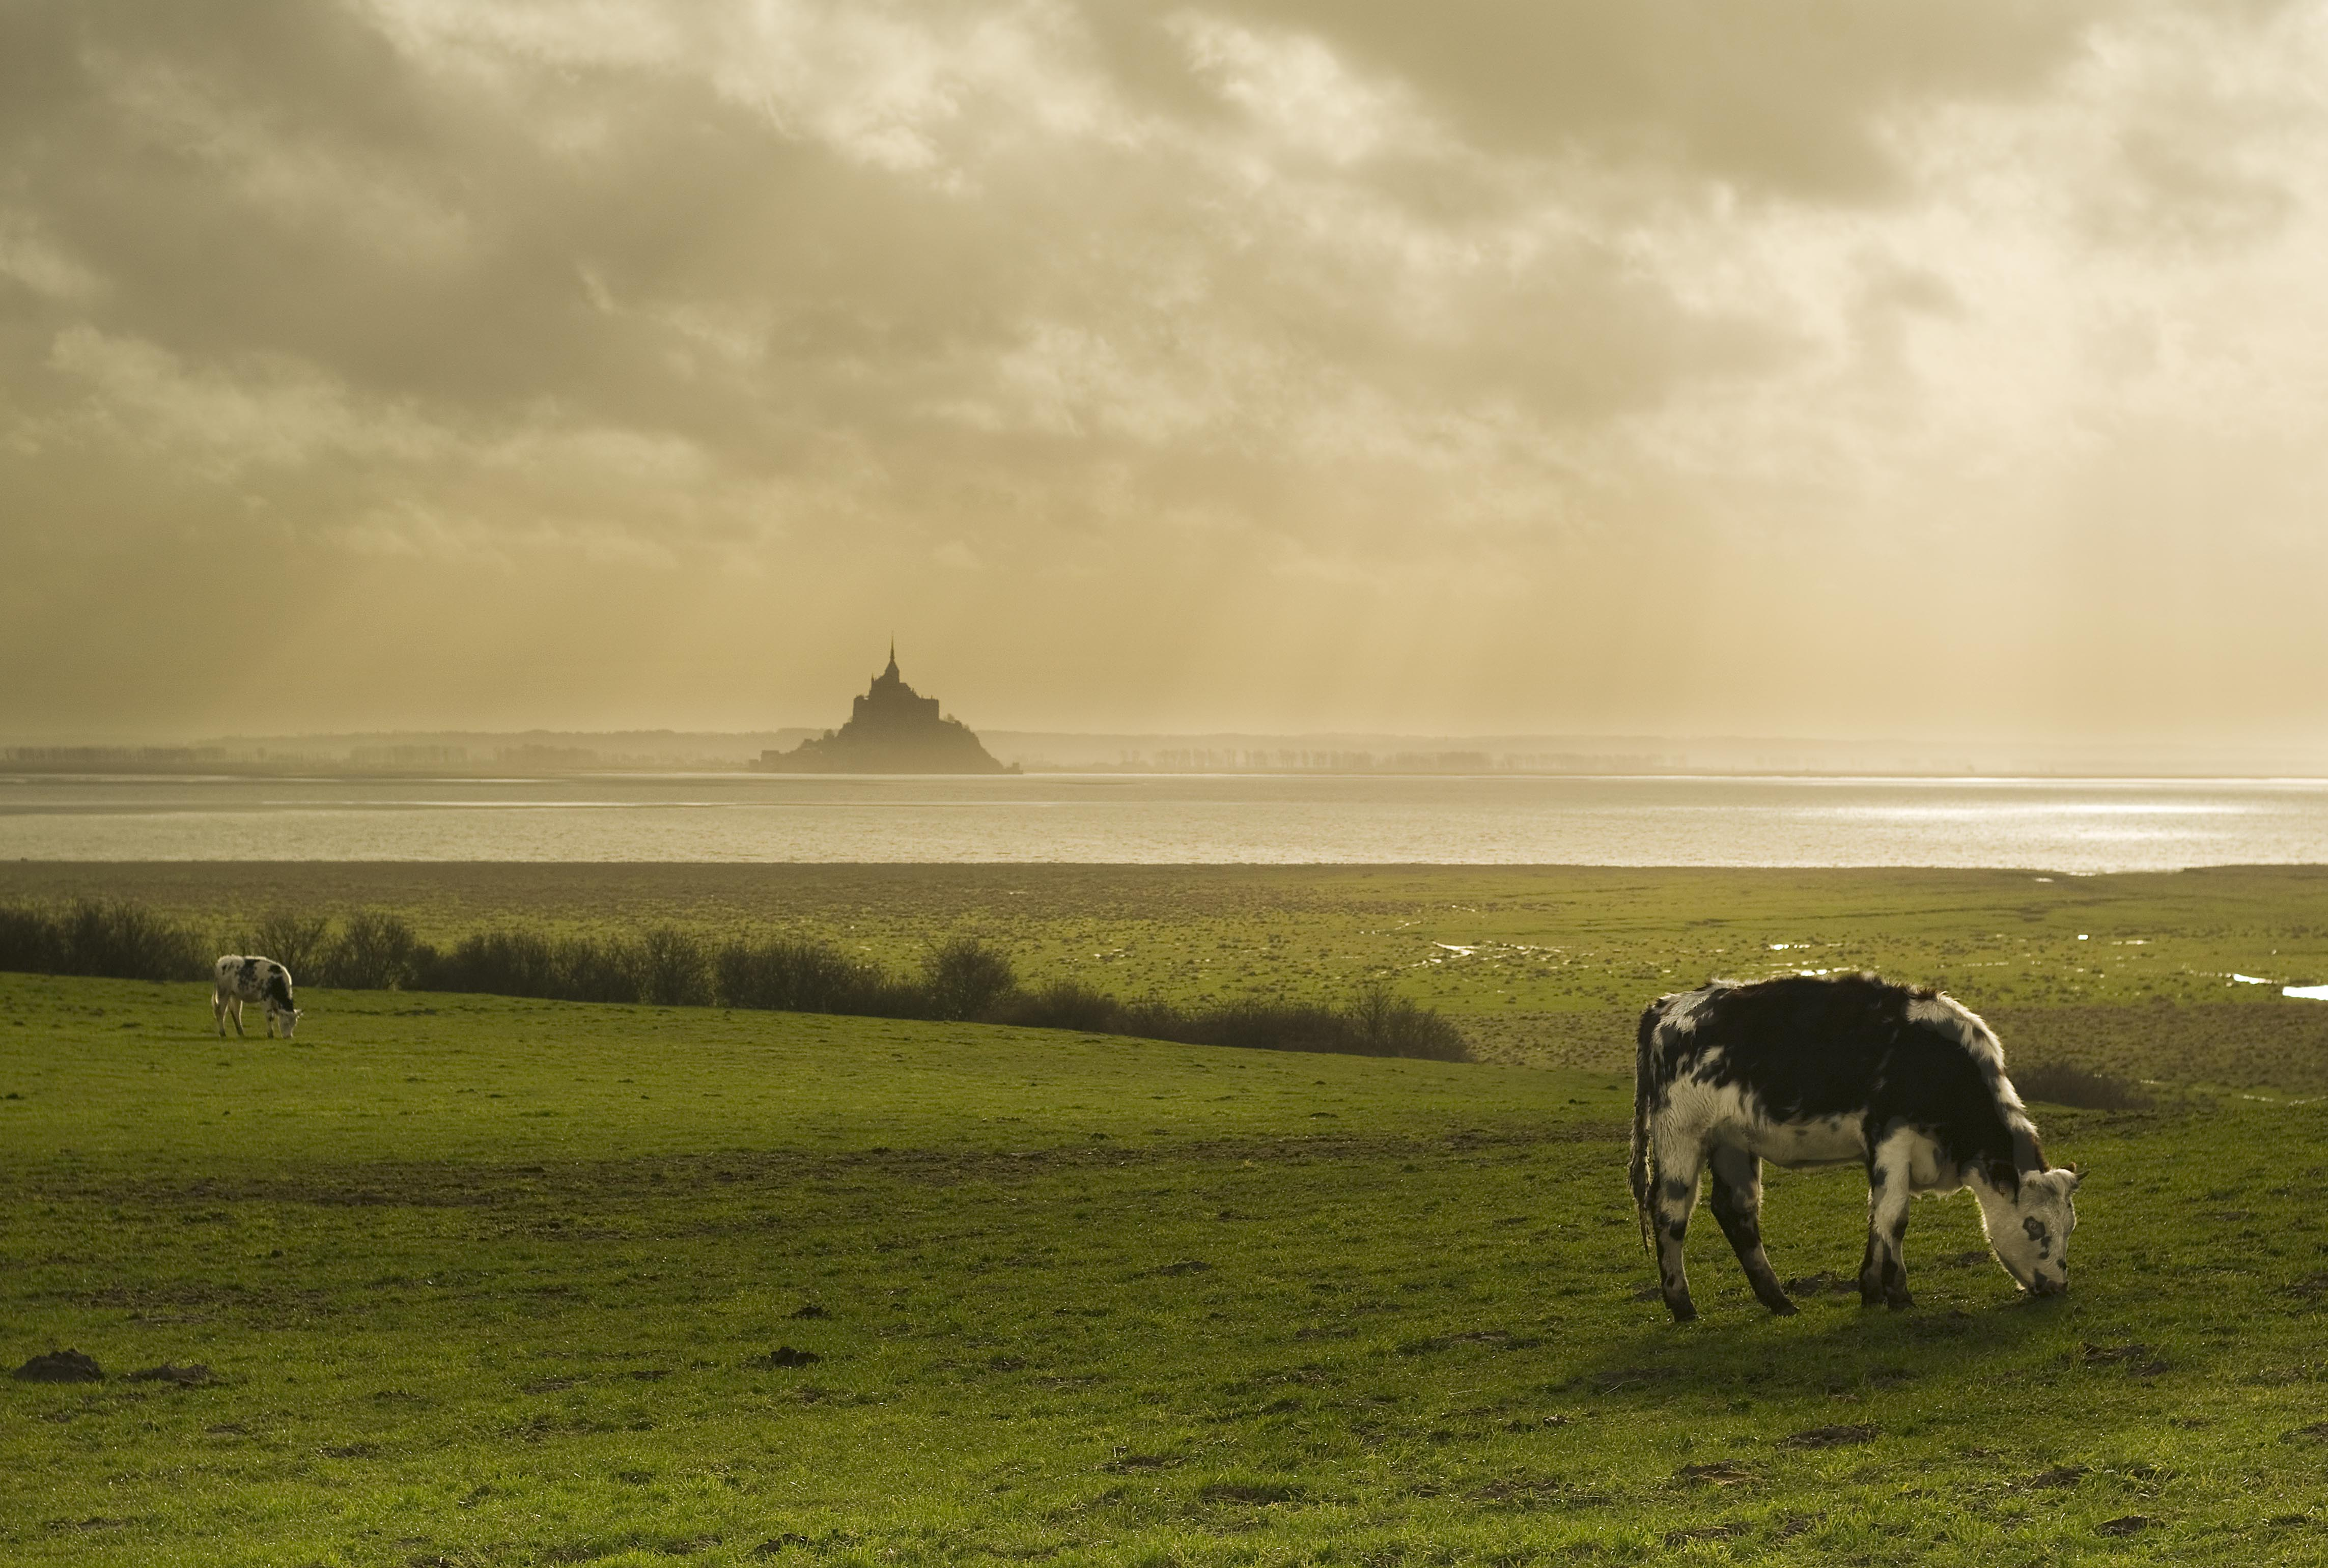 Mont St Michel at the estuary of the Sélune River